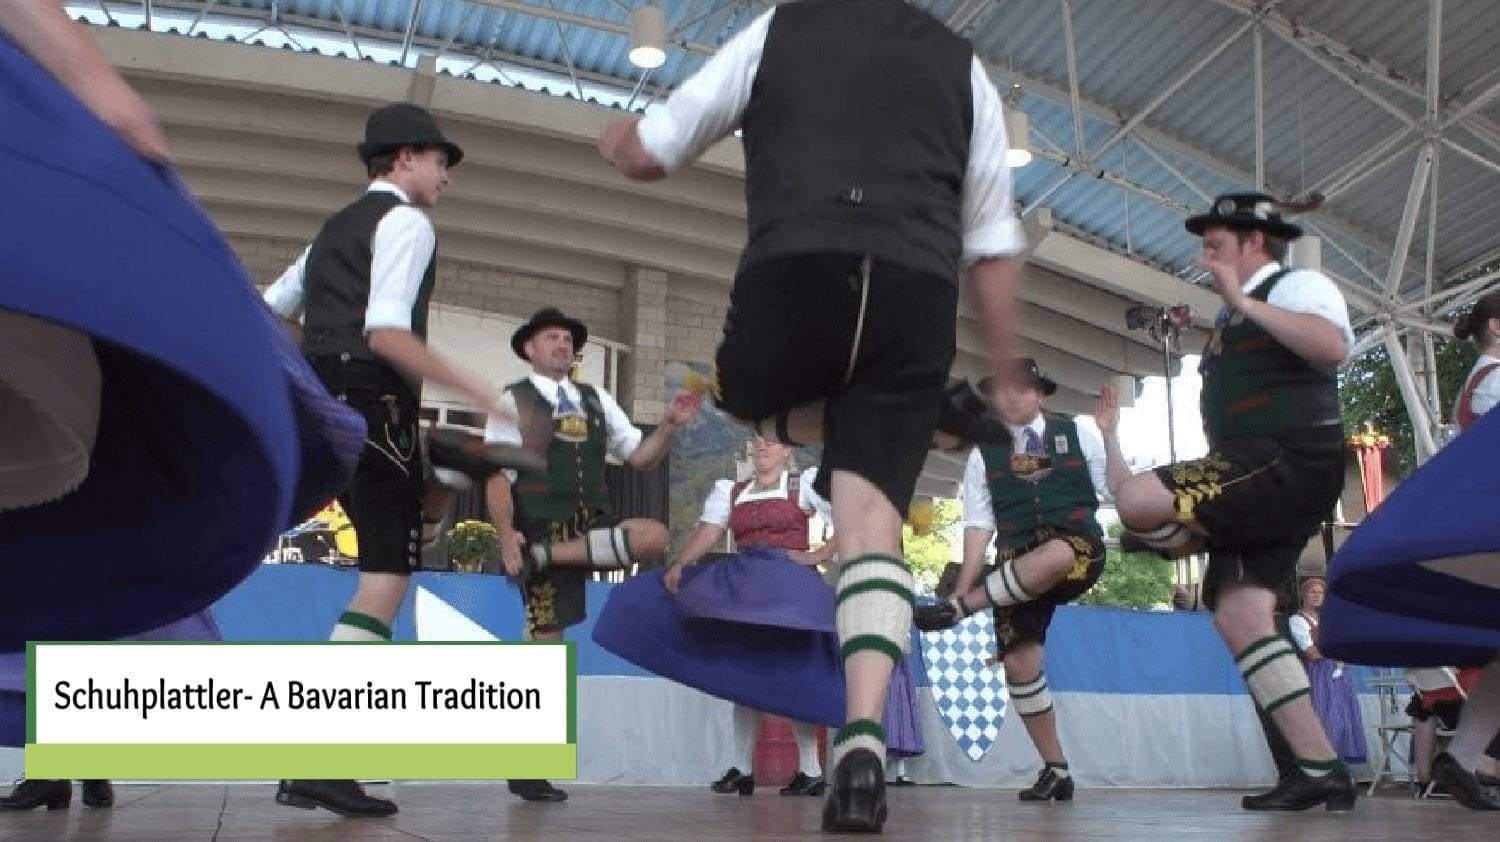 What is Schuhplattler -All About this Bavarian Cultural Tradition